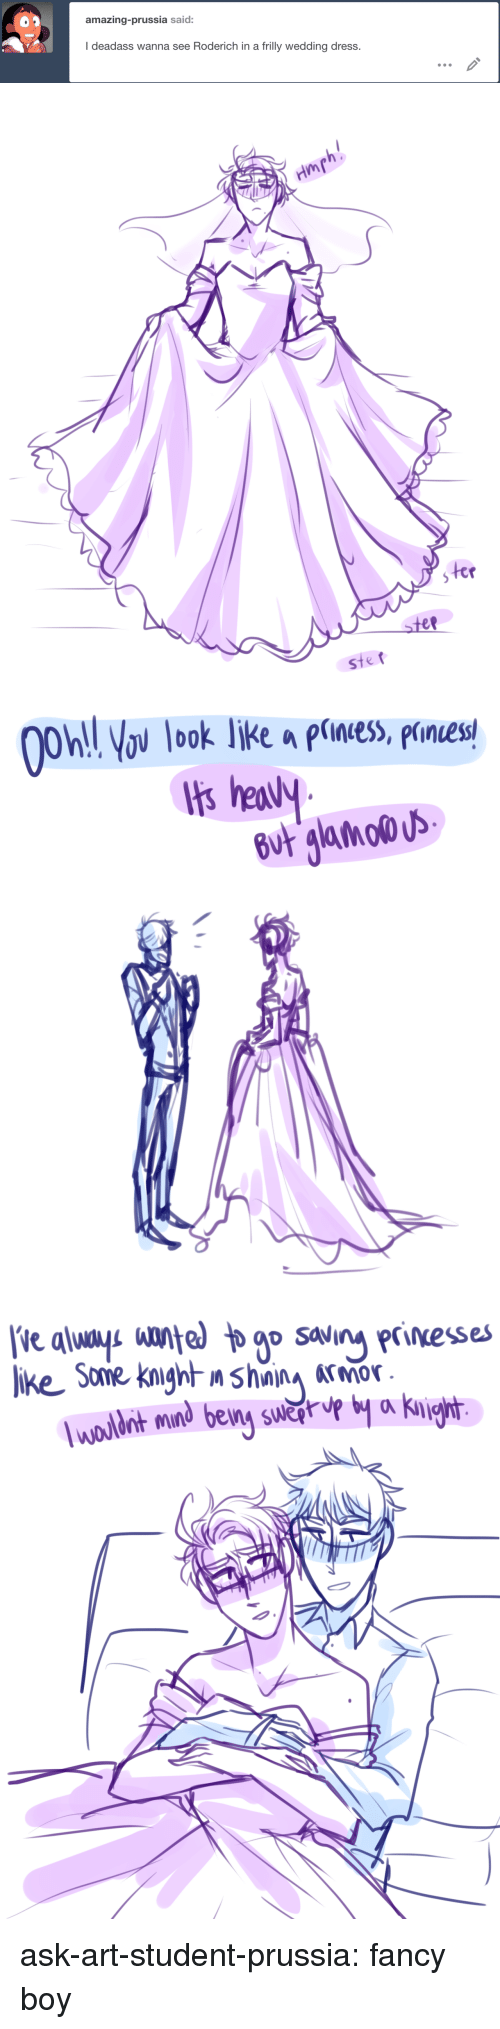 wedding dress: amazing-prussia said:  I deadass wanna see Roderich in a frilly wedding dress.   ep   On ov look liKe a piness, prnes  b0   nt mind being swǎrup by a Kni ask-art-student-prussia:  fancy boy